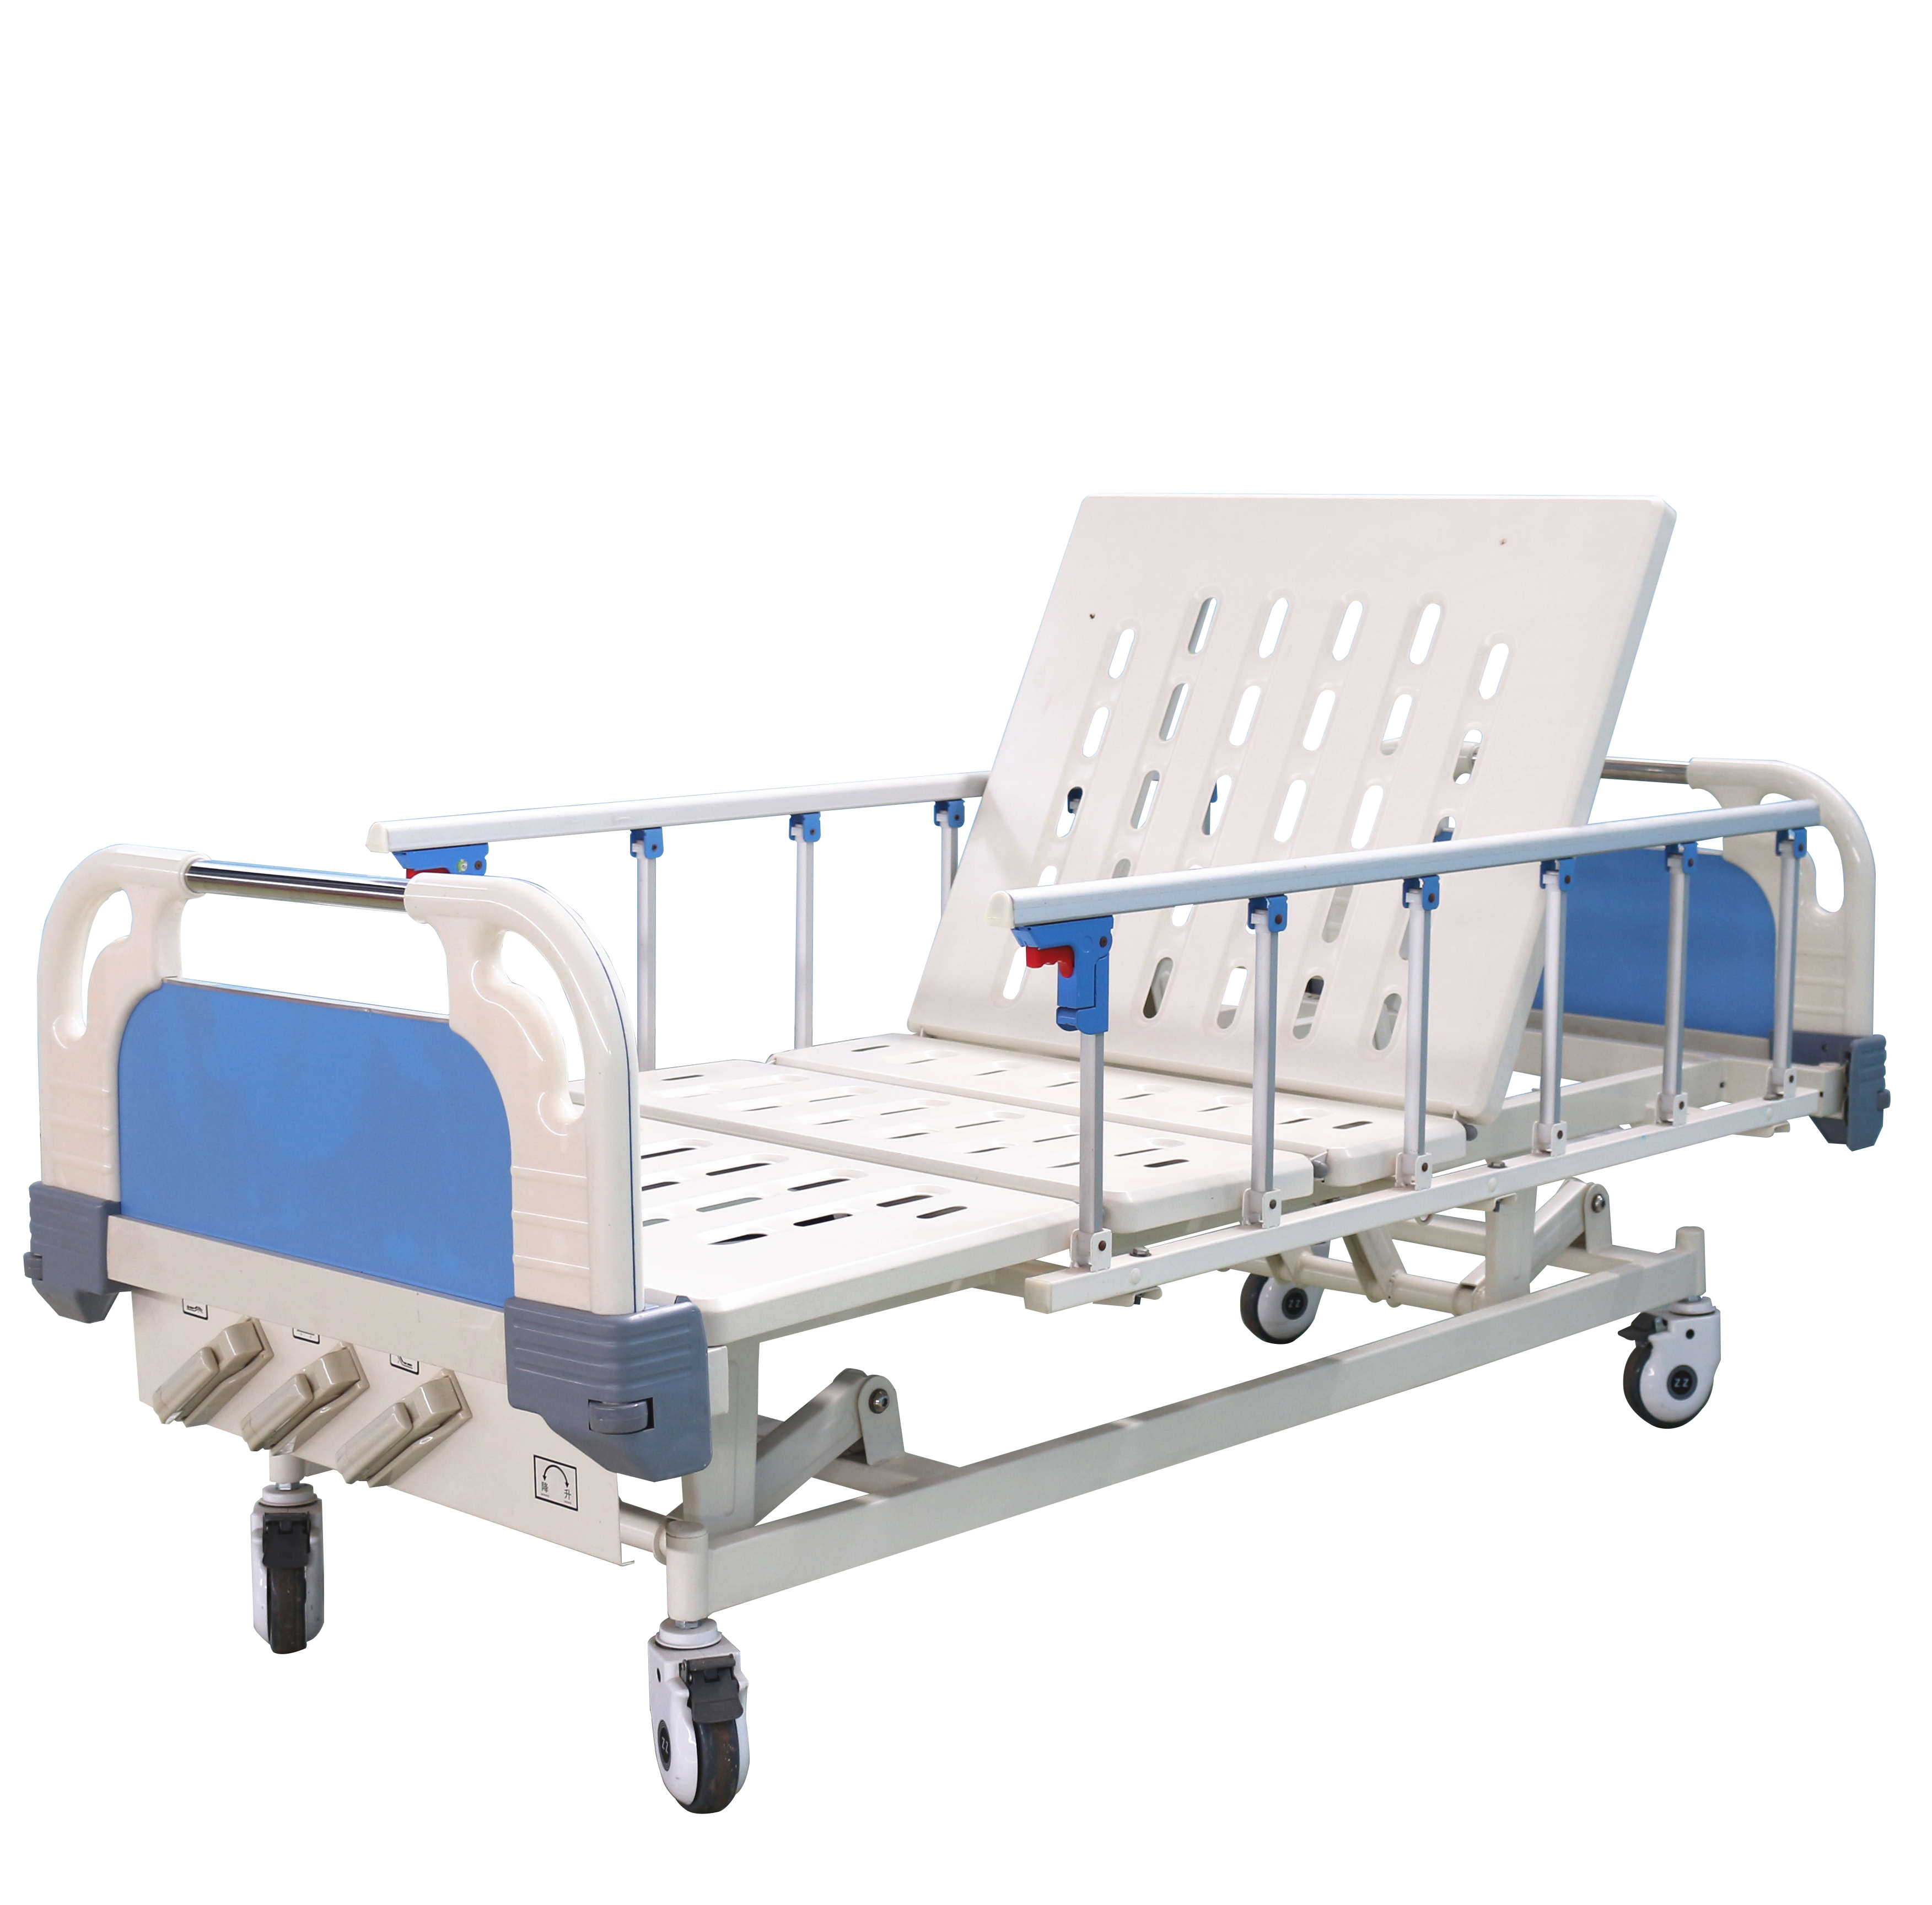 Medical Beds For Home Use Archives Kangli Brand Medical Beds Club